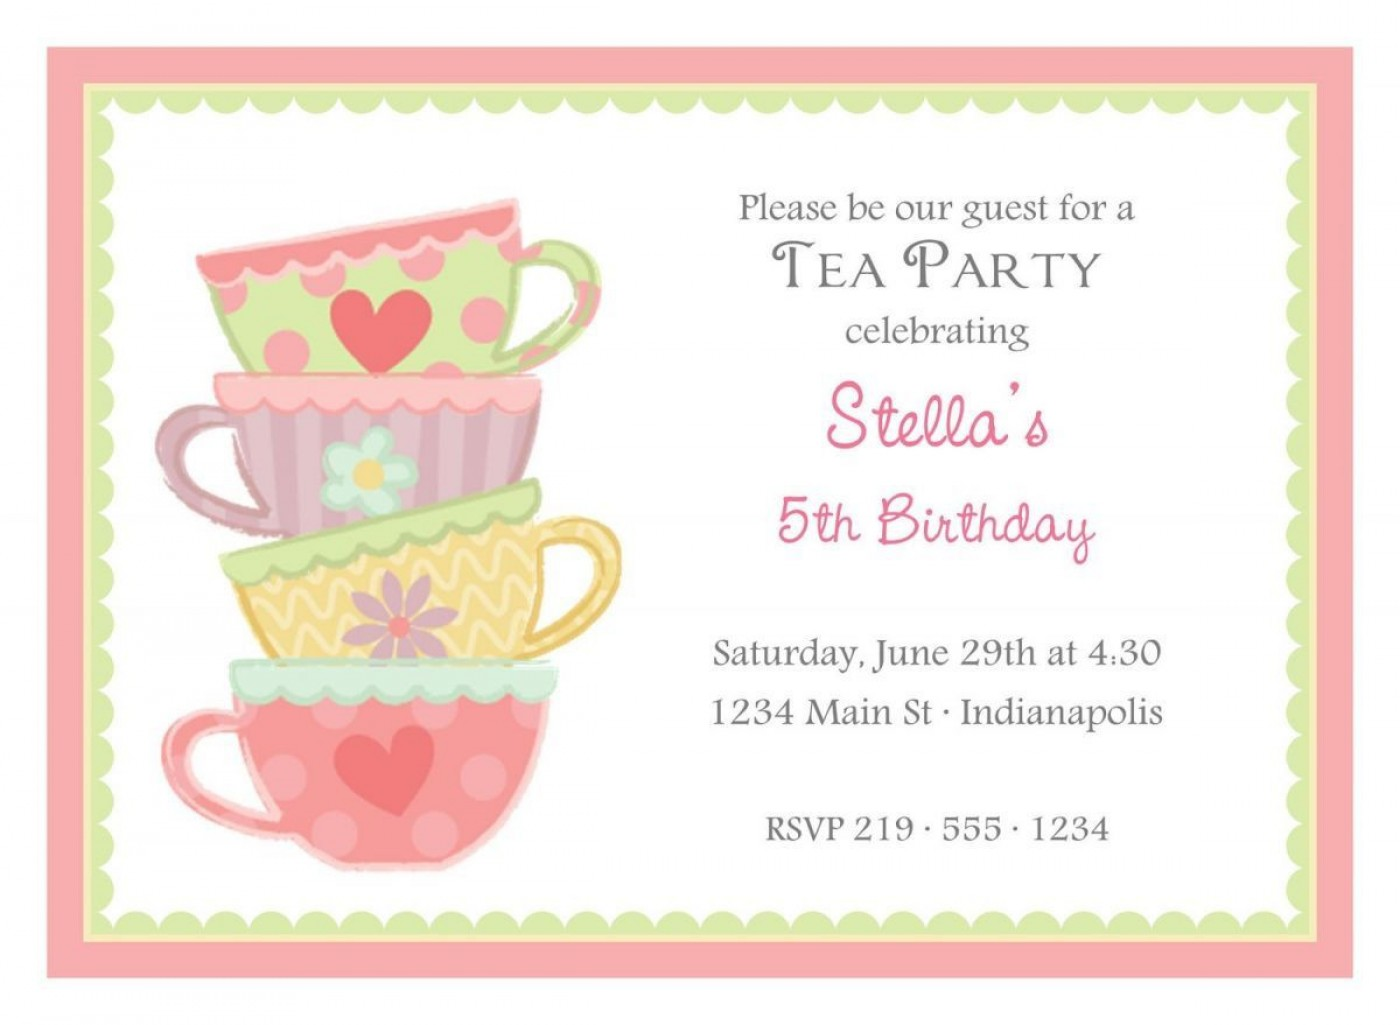 003 Formidable Tea Party Invitation Template Image  Wording Vintage Free Sample1400